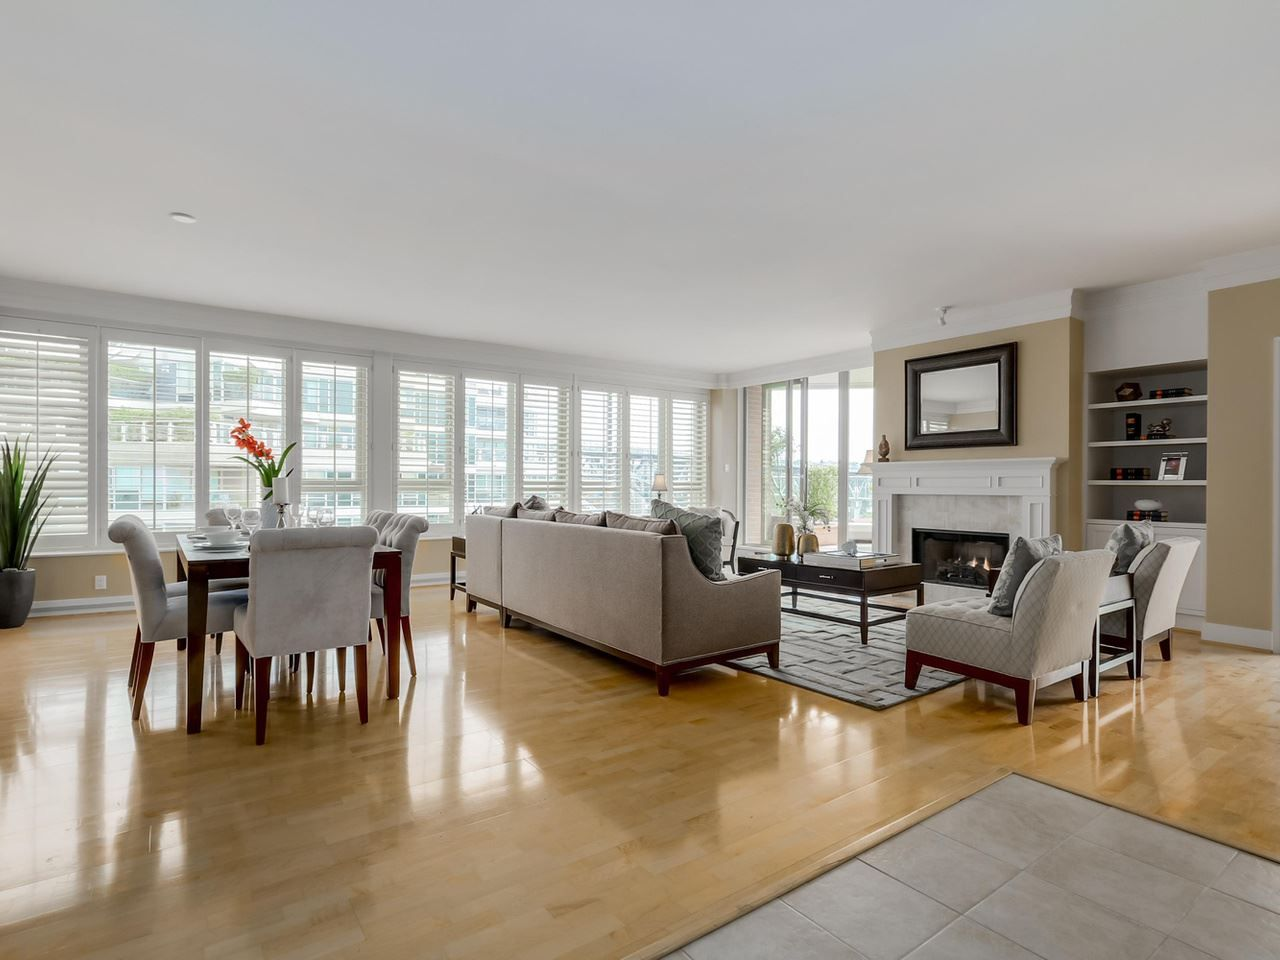 """Photo 2: Photos: 800 1675 HORNBY Street in Vancouver: Yaletown Condo for sale in """"SEAWALK SOUTH"""" (Vancouver West)  : MLS®# R2083569"""